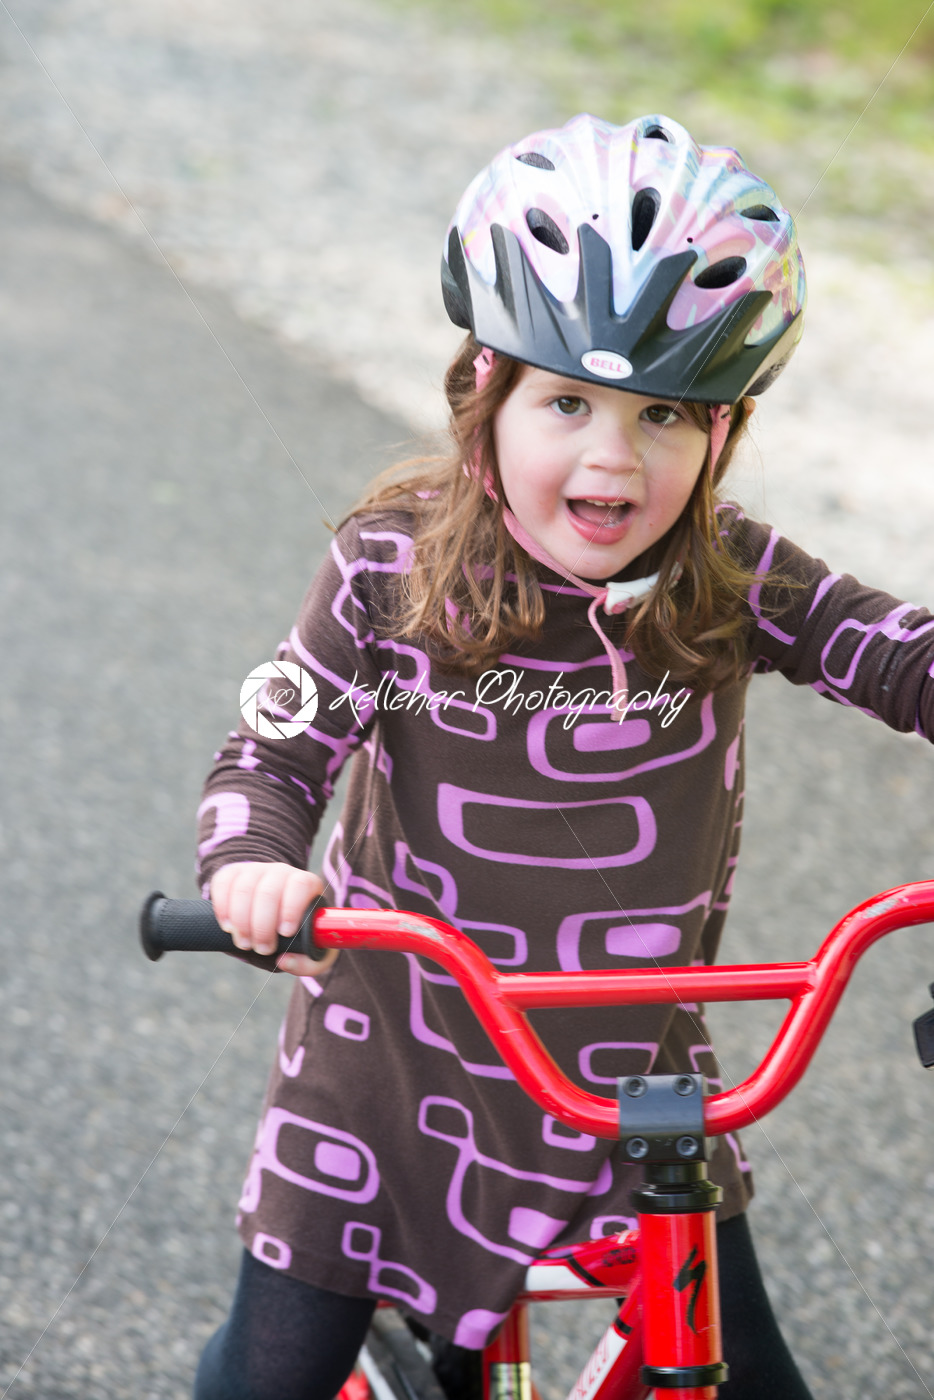 Young Girl Riding Bike on paved trail - Kelleher Photography Store